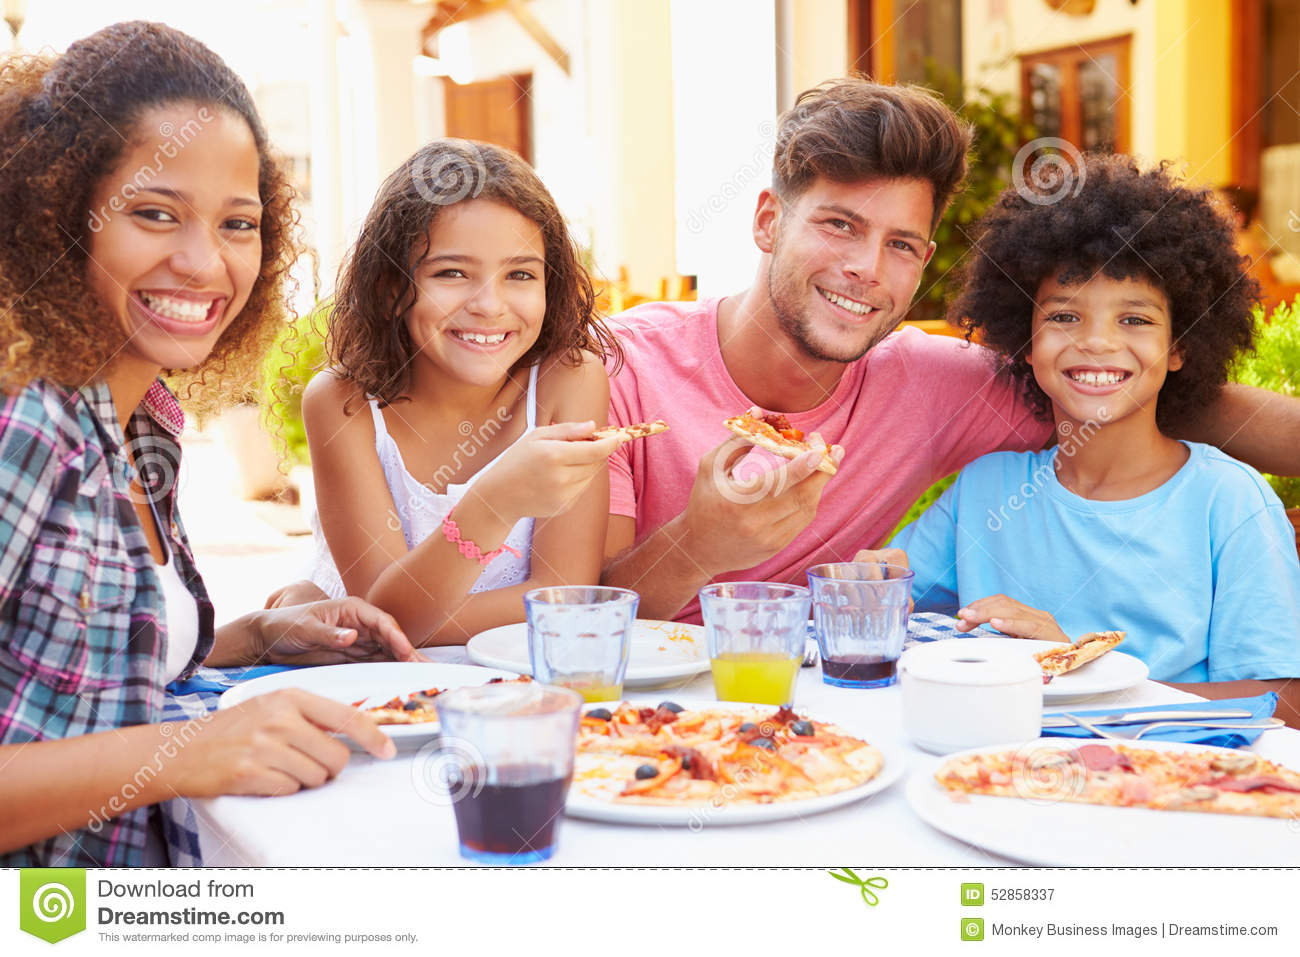 Portrait Stock - Outdoor Eating At Image 52858337 Hispanic Child Restaurant Of Family Meal